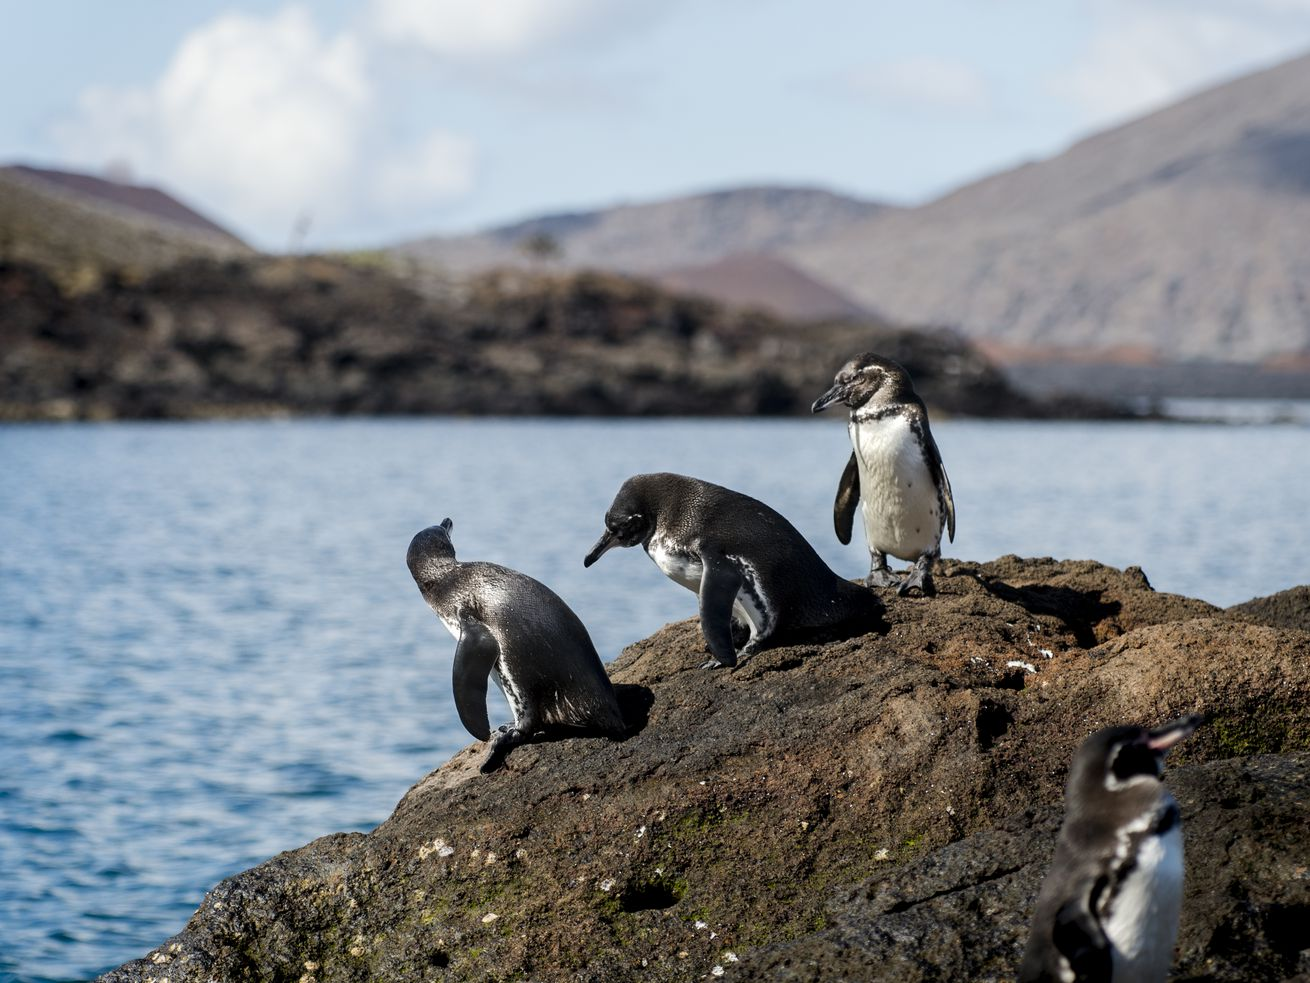 These adorable penguins want a rich diversity of life on Earth. And you should too.